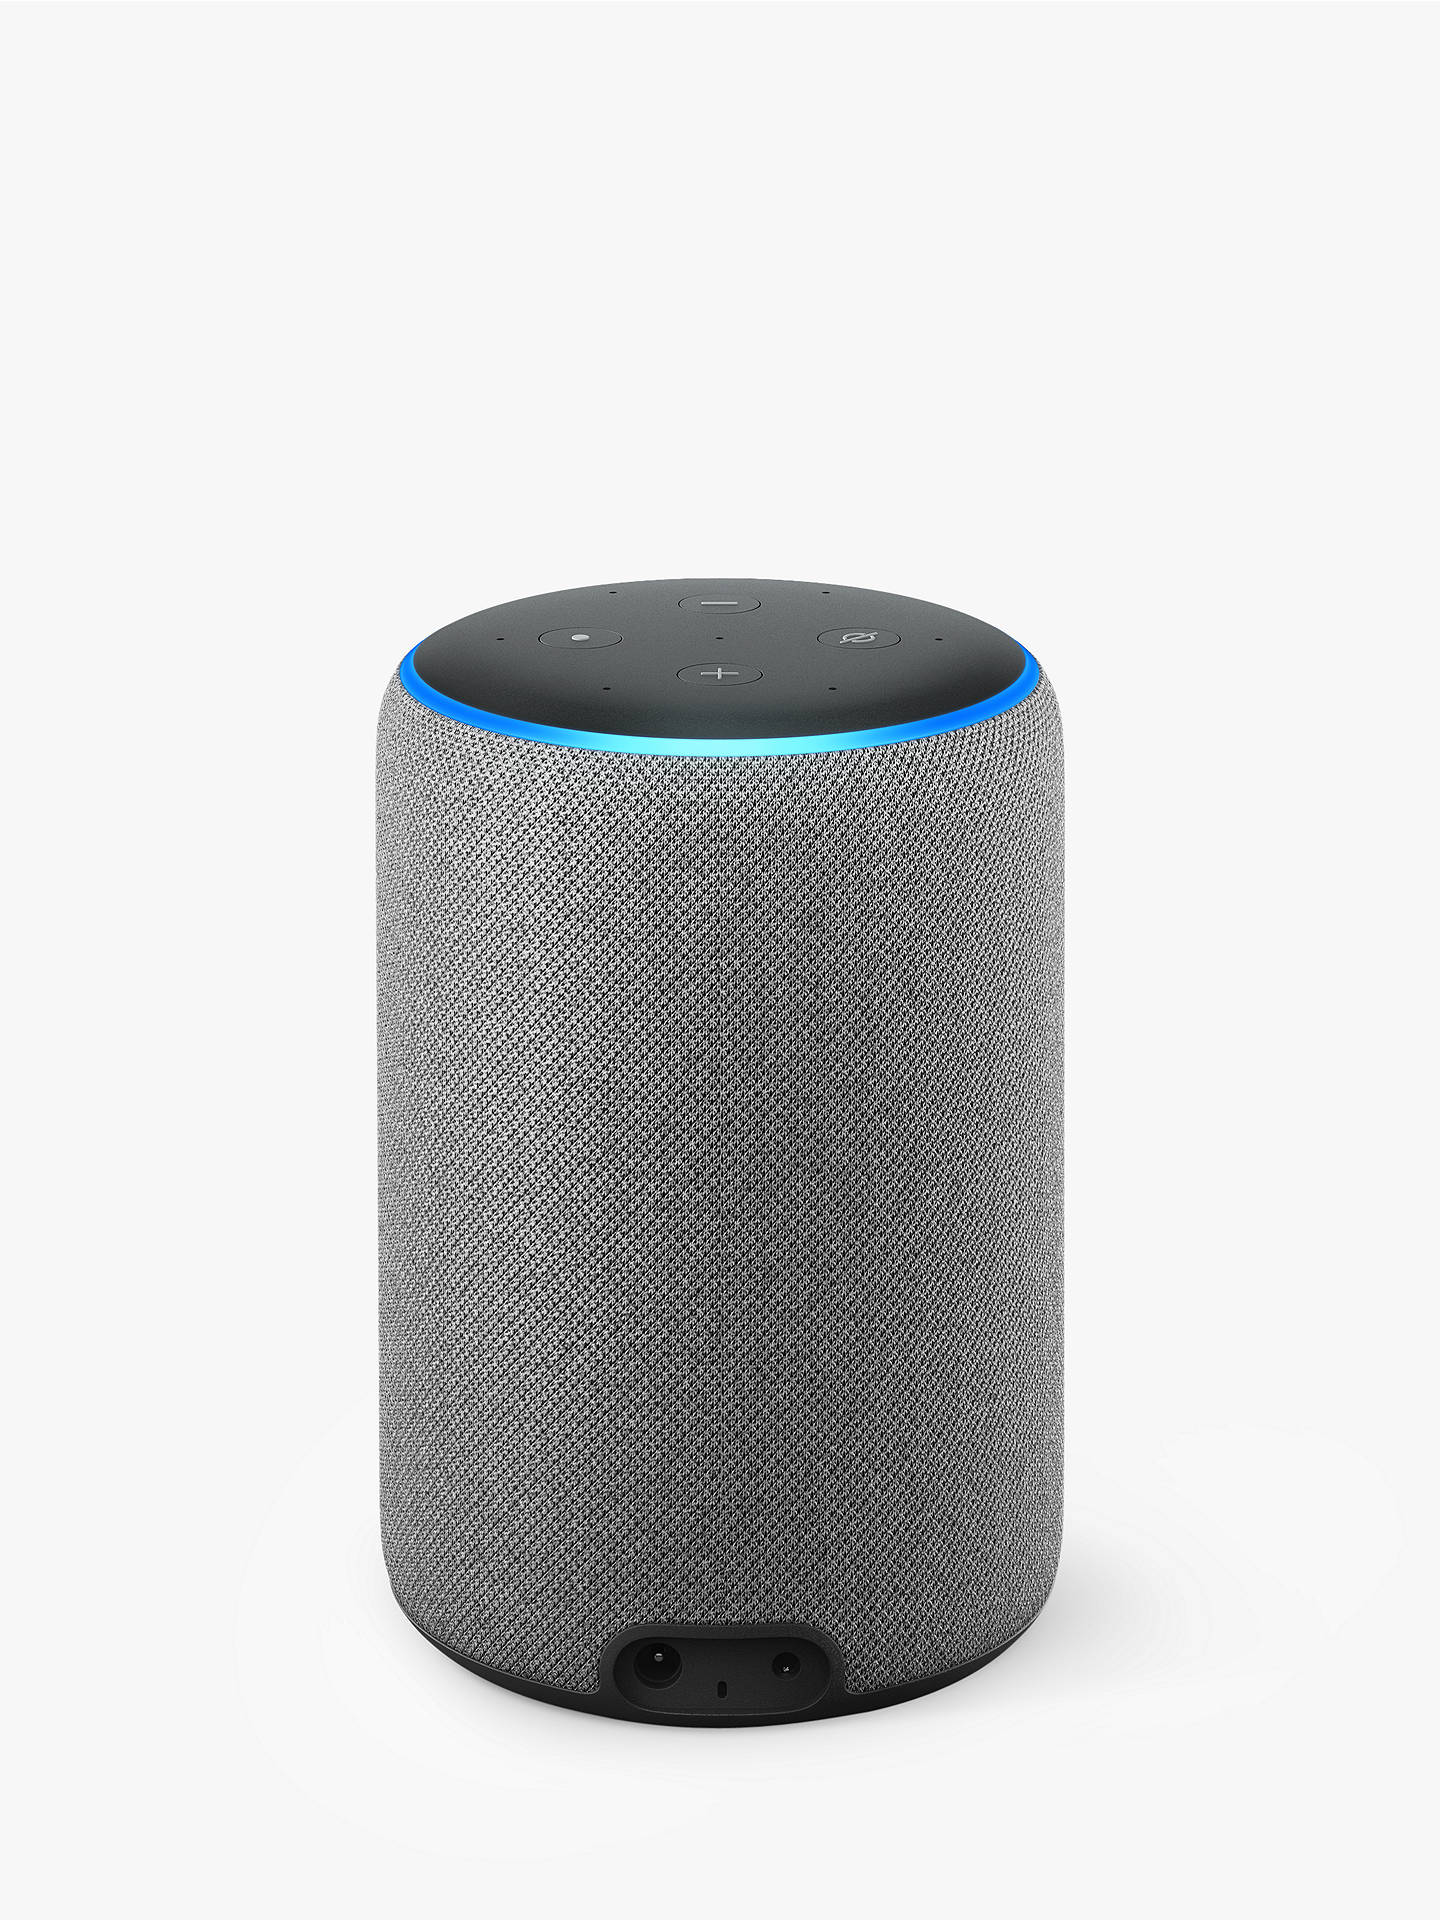 BuyAmazon Echo Plus Smart Speaker with Built-in Smart Home Hub with Alexa Voice Recognition & Control, 2nd Generation, Grey Online at johnlewis.com